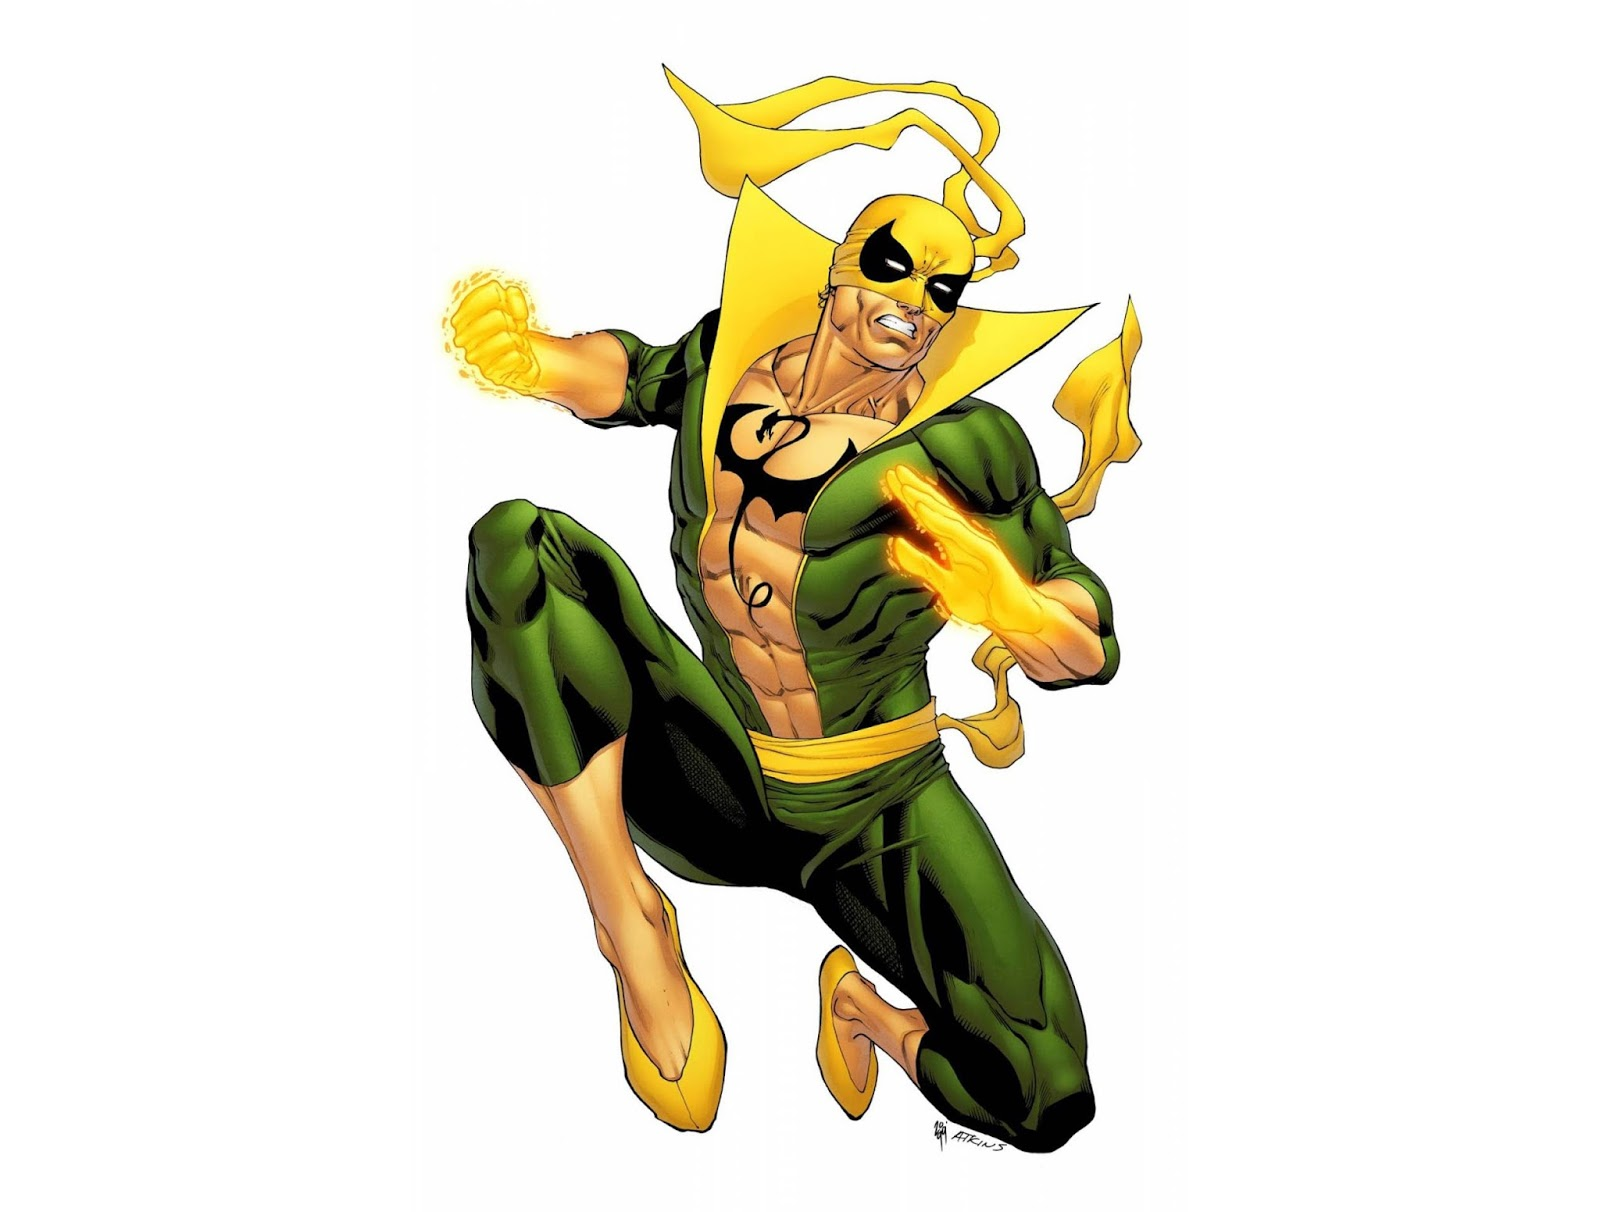 iron fist essay Overly strict, controlling parents risk raising delinquent kids iron fist -- while not giving their children a chance to speak their mind.